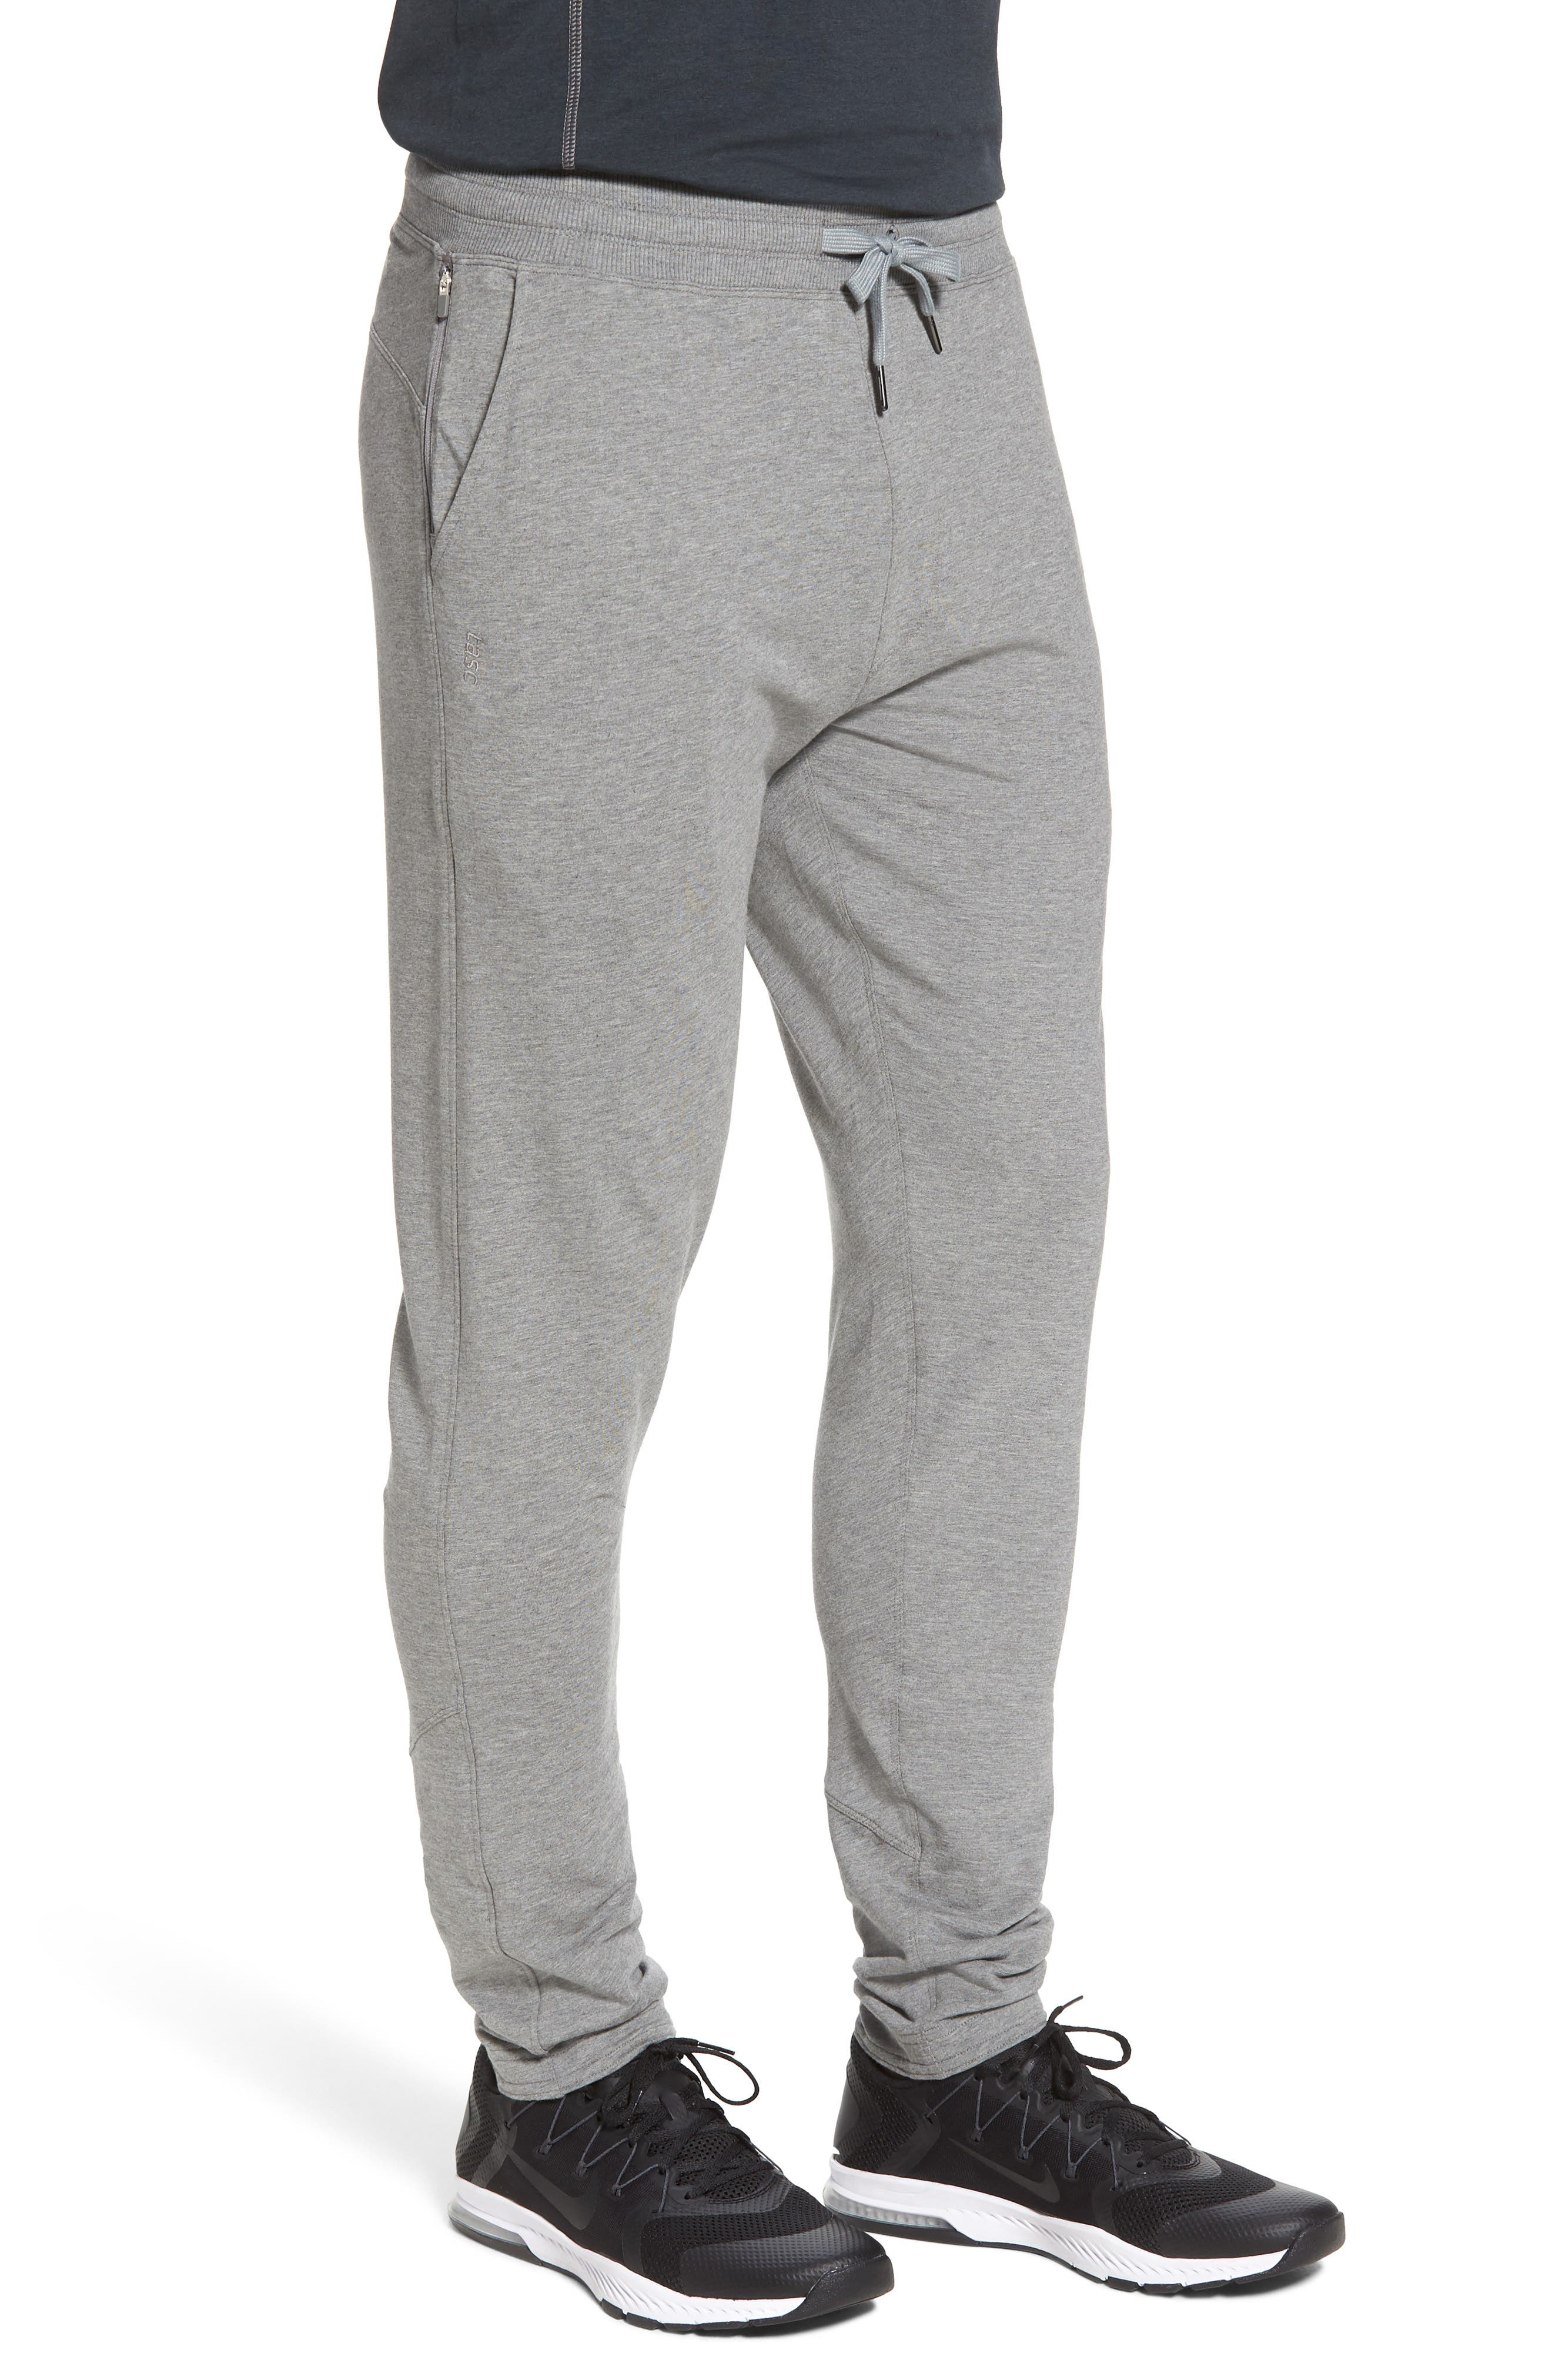 Legacy Lounge Pants,                             Alternate thumbnail 3, color,                             Heather Grey